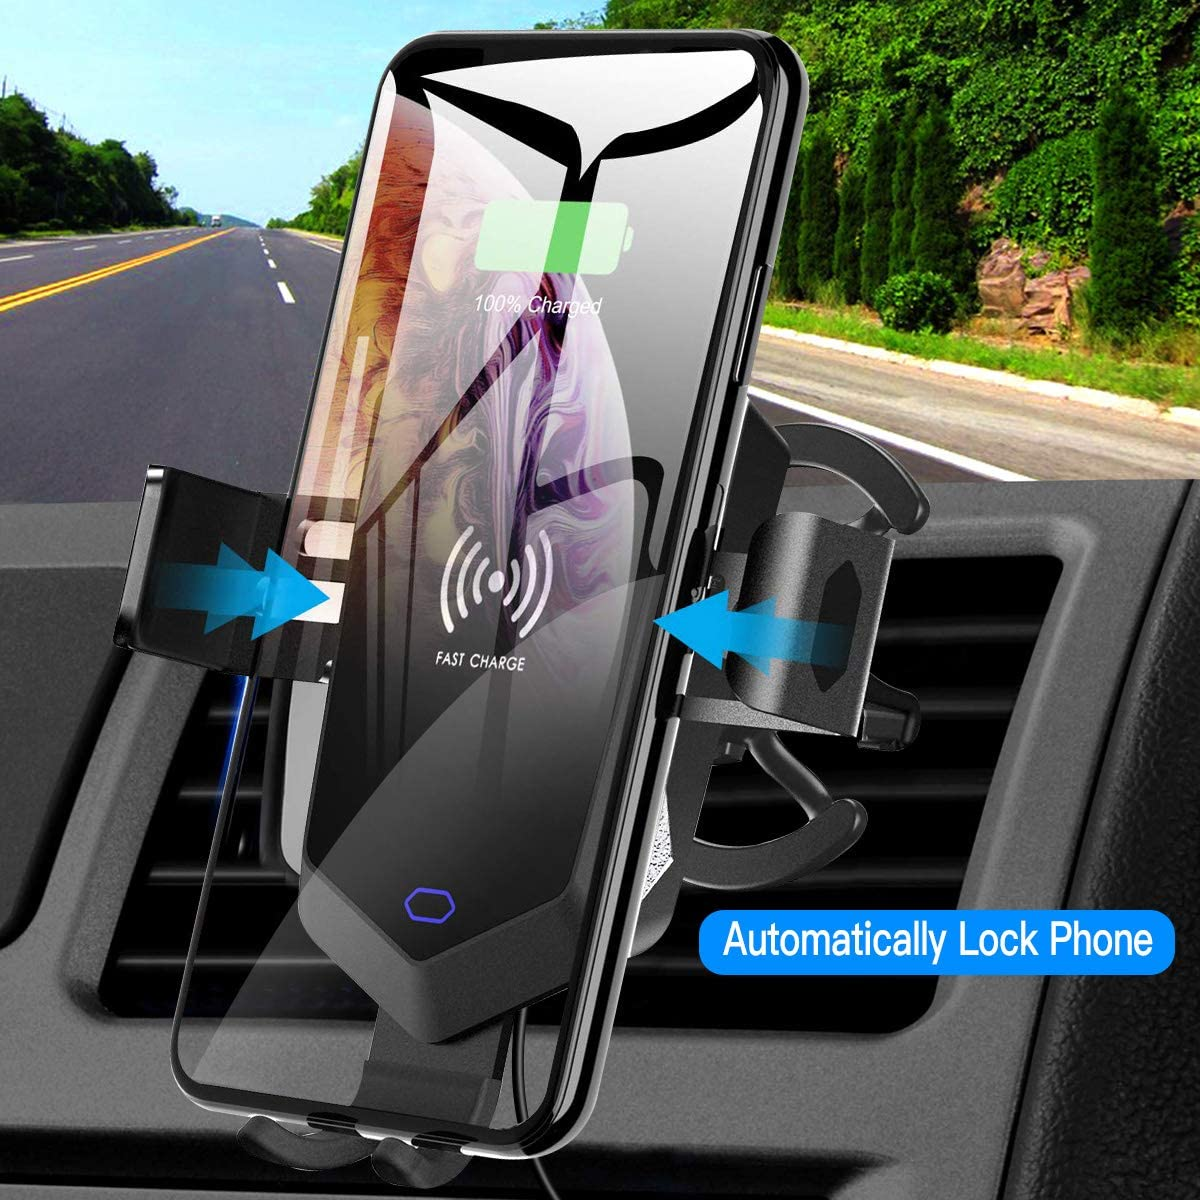 10W Fast Charging Wireless Car Charger Mount Auto Clamping Car Phone Mount Fits for iPhone Xs//Xs Max//XR//8 Plus,Samsung Galaxy S10//S10+ S9//S8,and All Qi-Enable Devices Air Vent Phone Holder for Car,